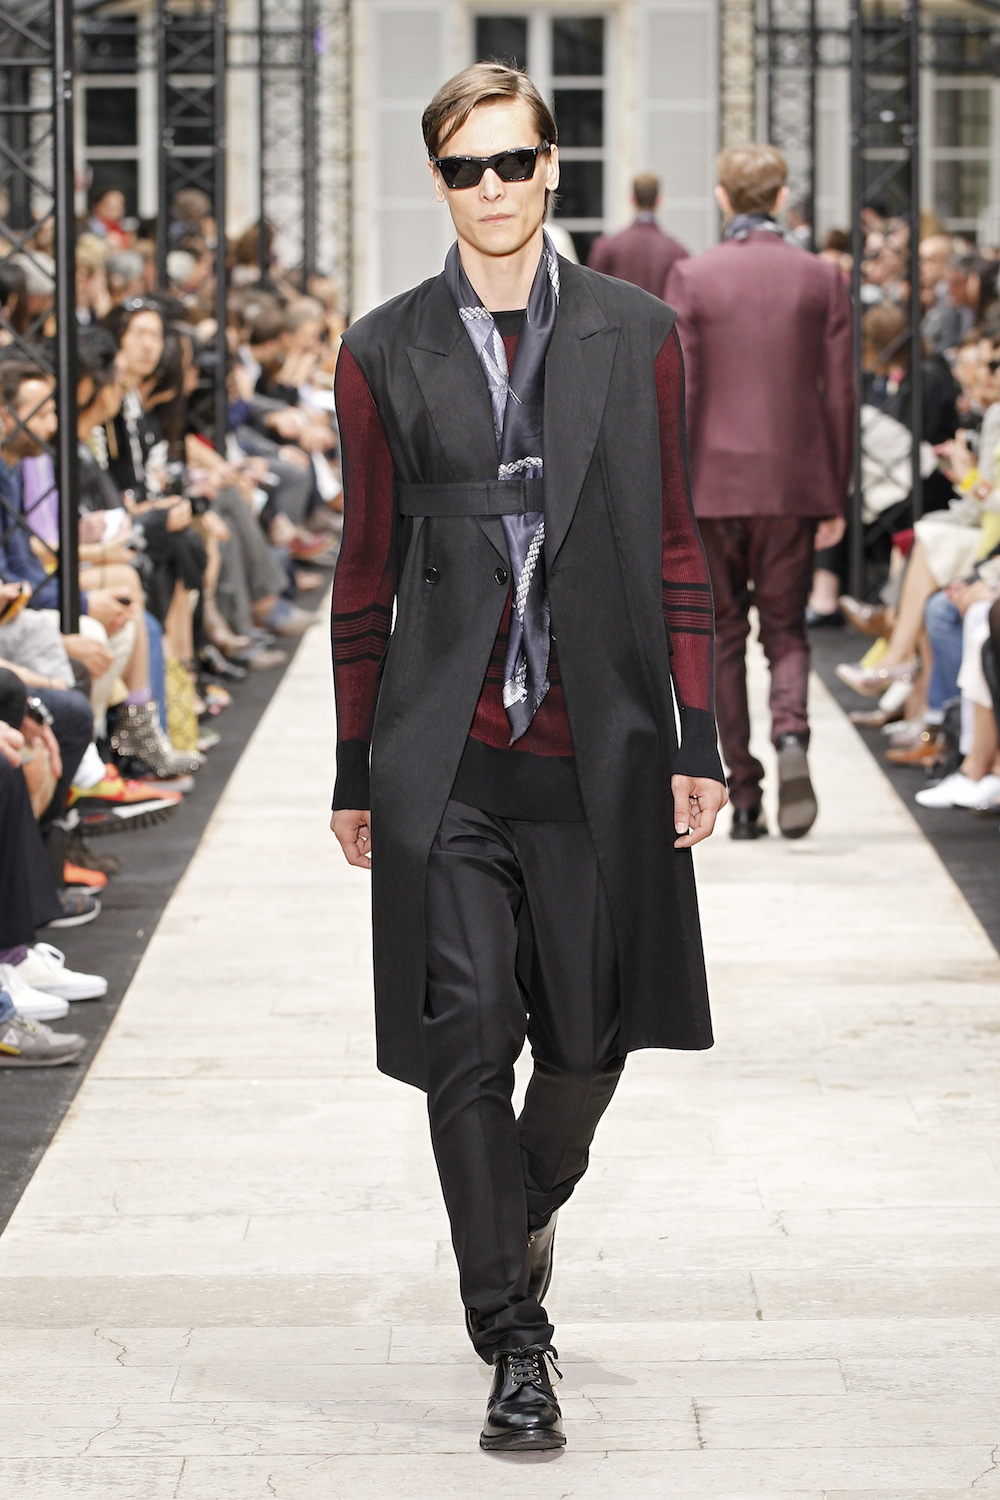 SS14 CERRUTI MEN PARIS 06/28/2013